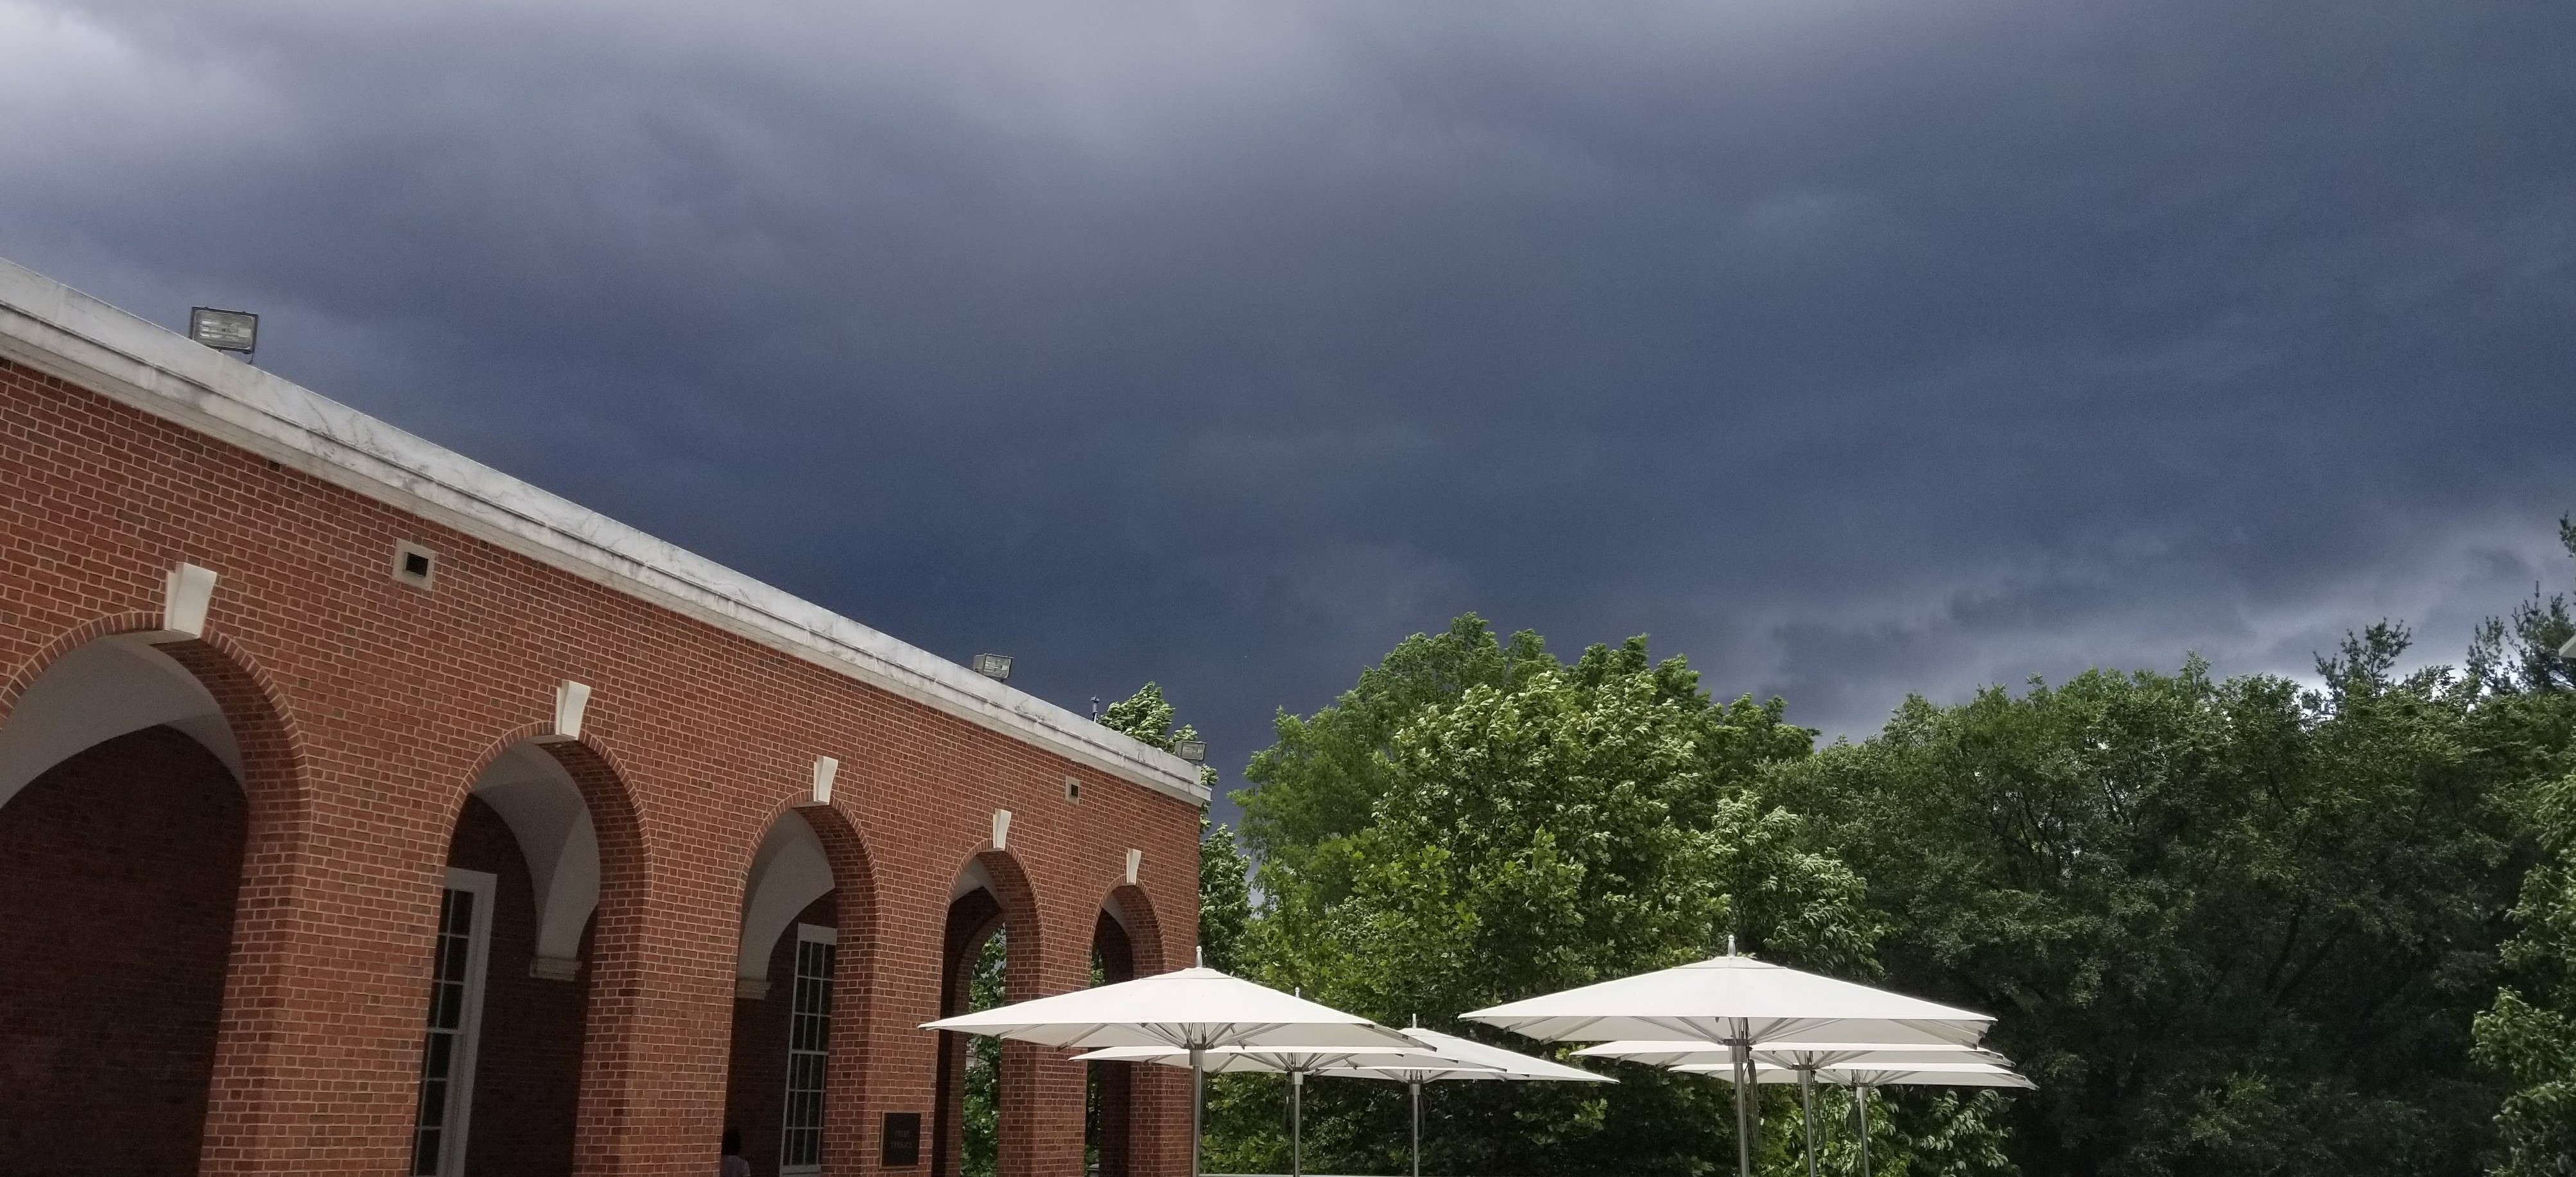 Brick archway and white umbrellas overshadowed by clouds.